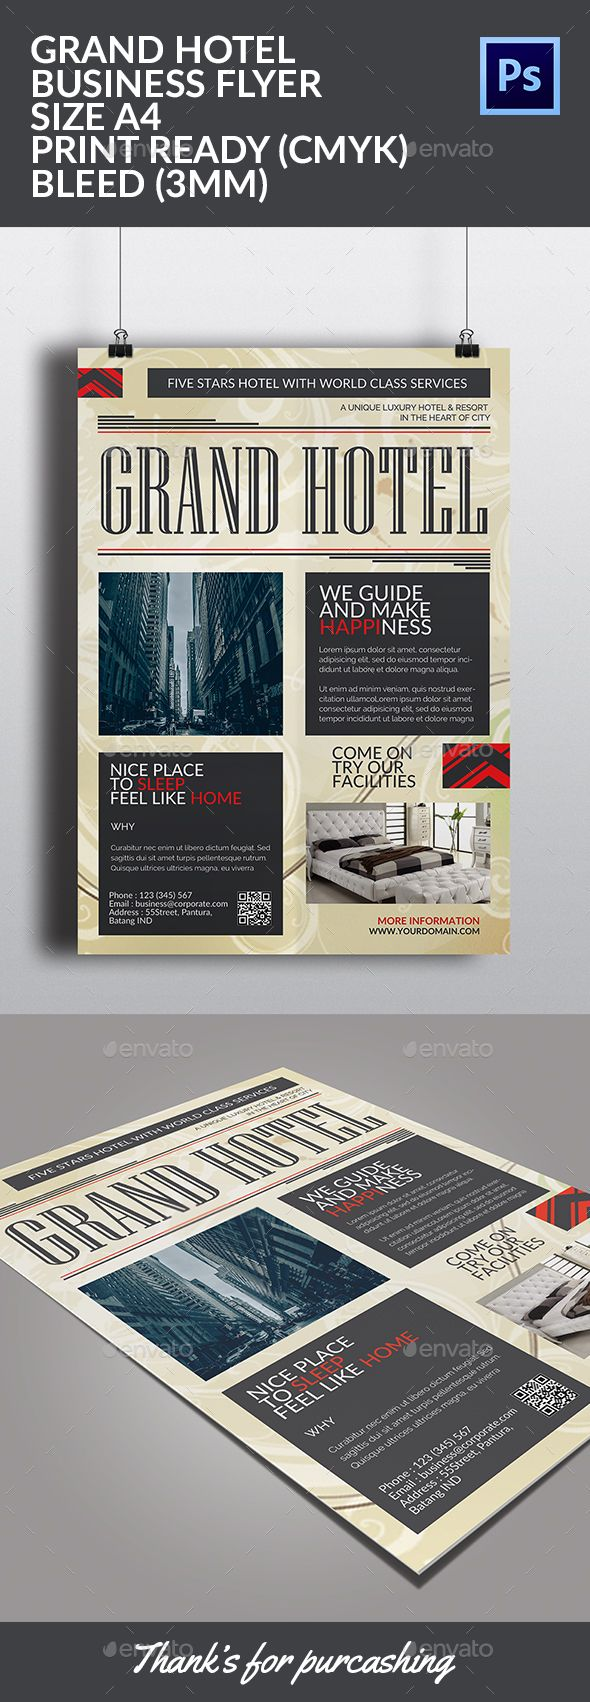 Grand Hotel Flyer Template - Corporate Flyers